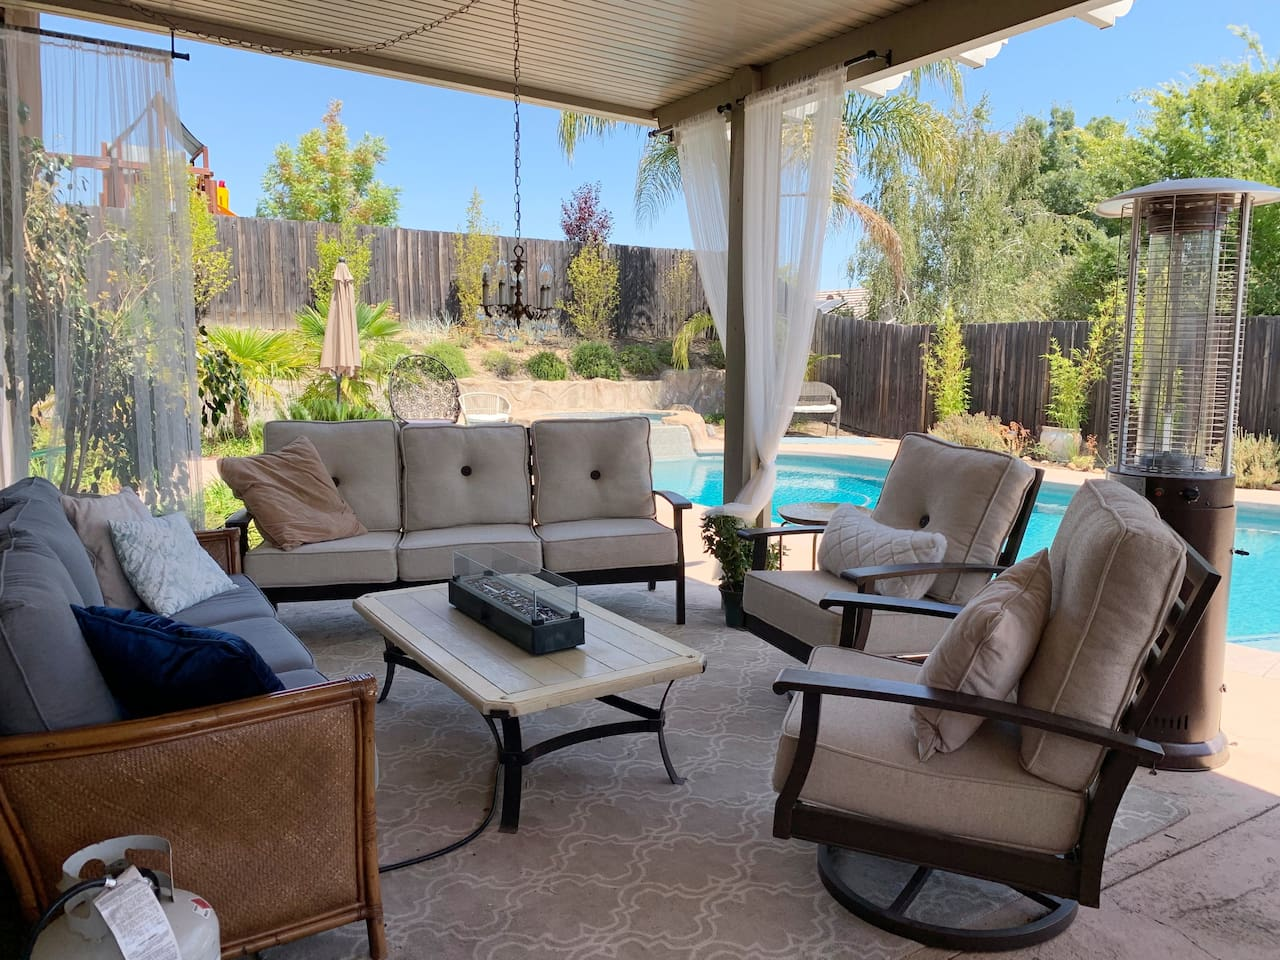 Stunning private outdoor seating area with bbq, pool, hot tub, sunning area and picnic area.